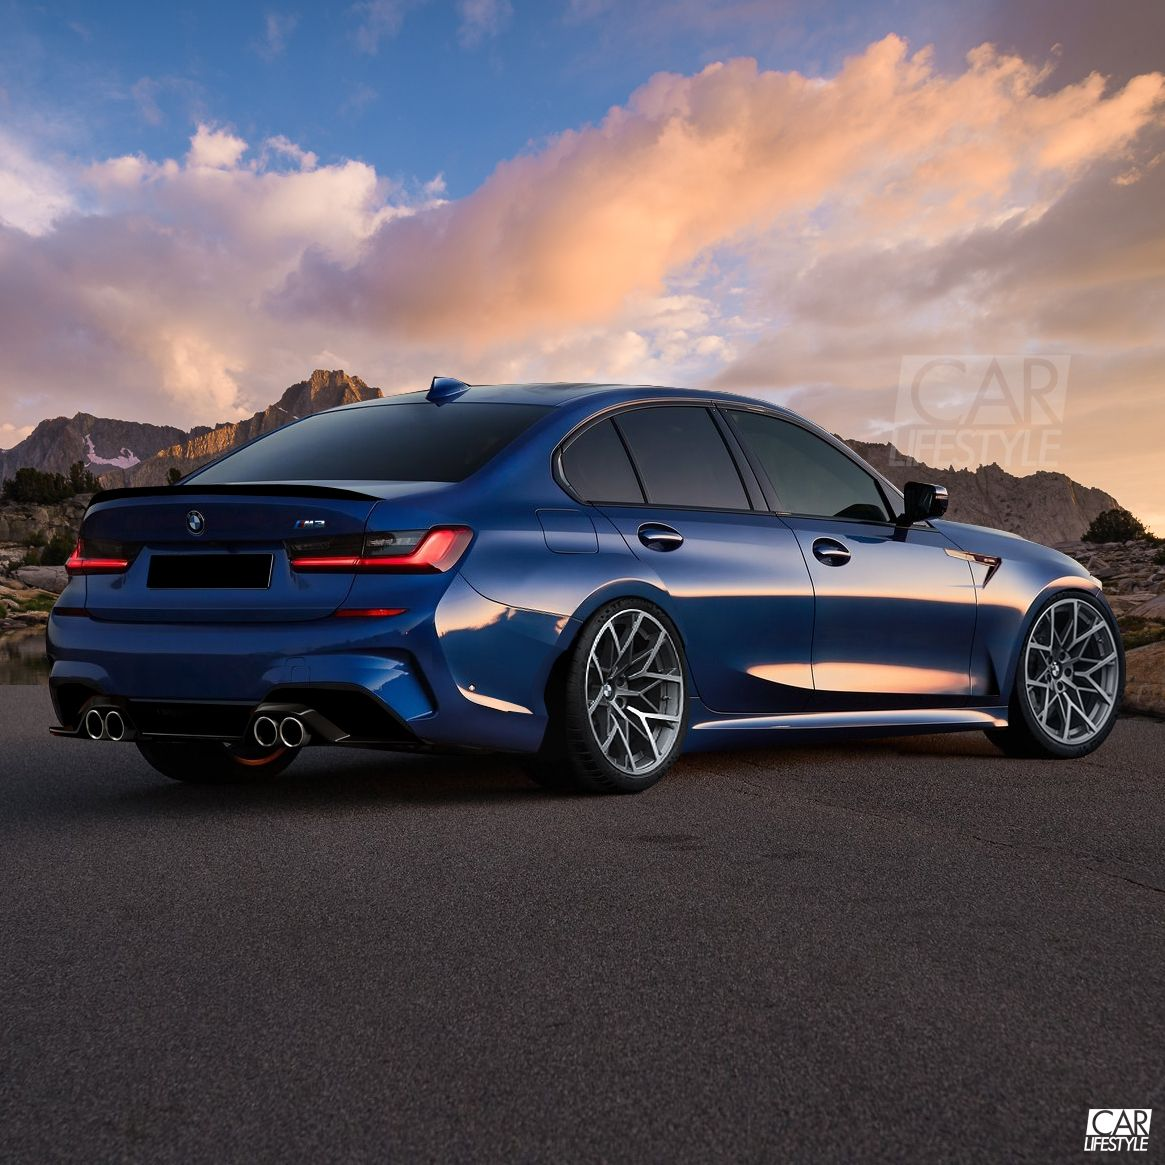 2020 Bmw G80 M3 Render With Images Bmw M3 Bmw Price Bmw